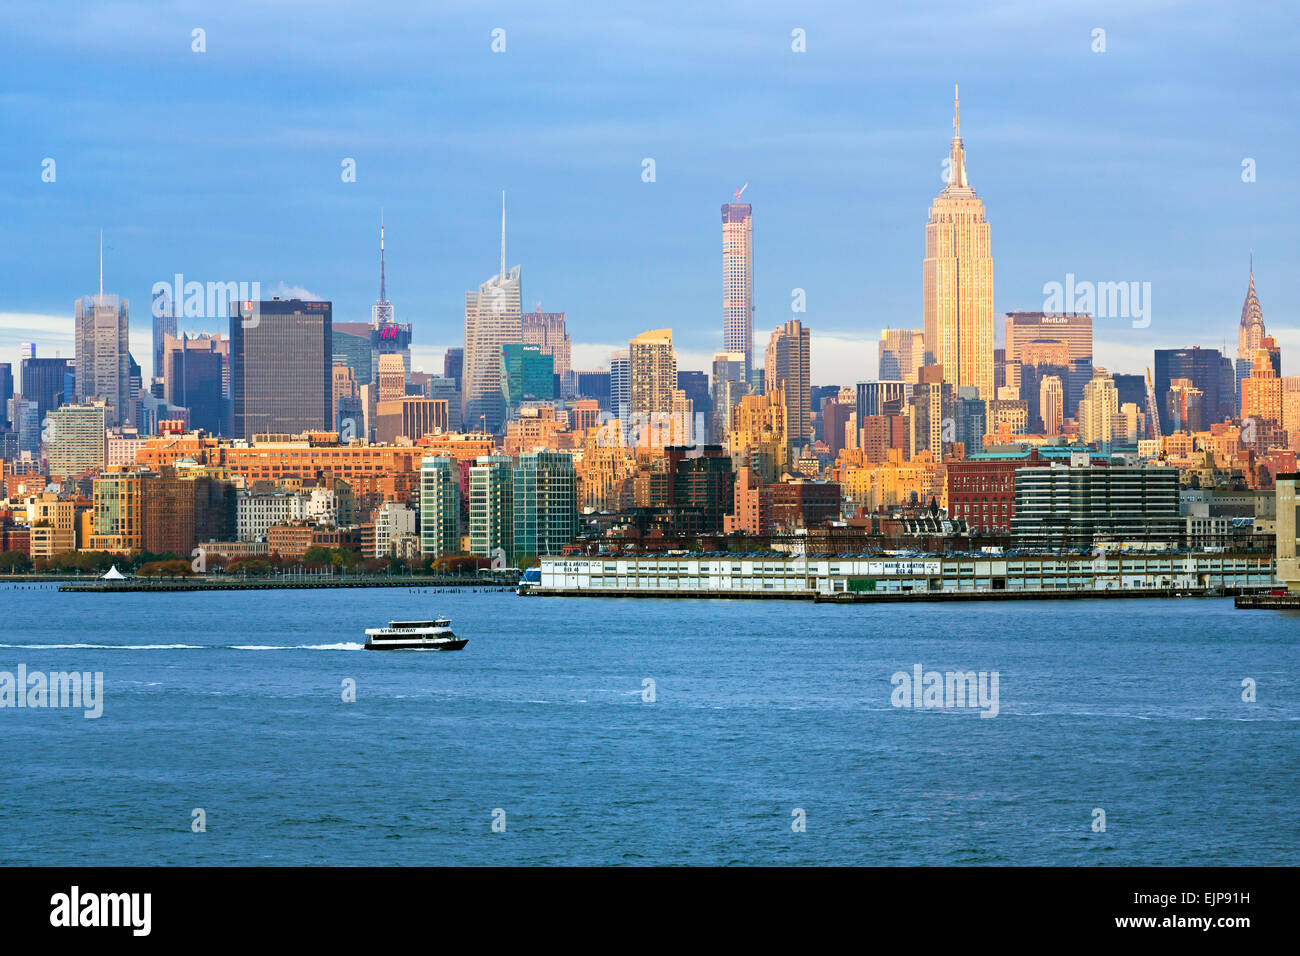 Empire State Building and Midtown Manhattan across the Hudson River, New York, United States of America Stock Photo